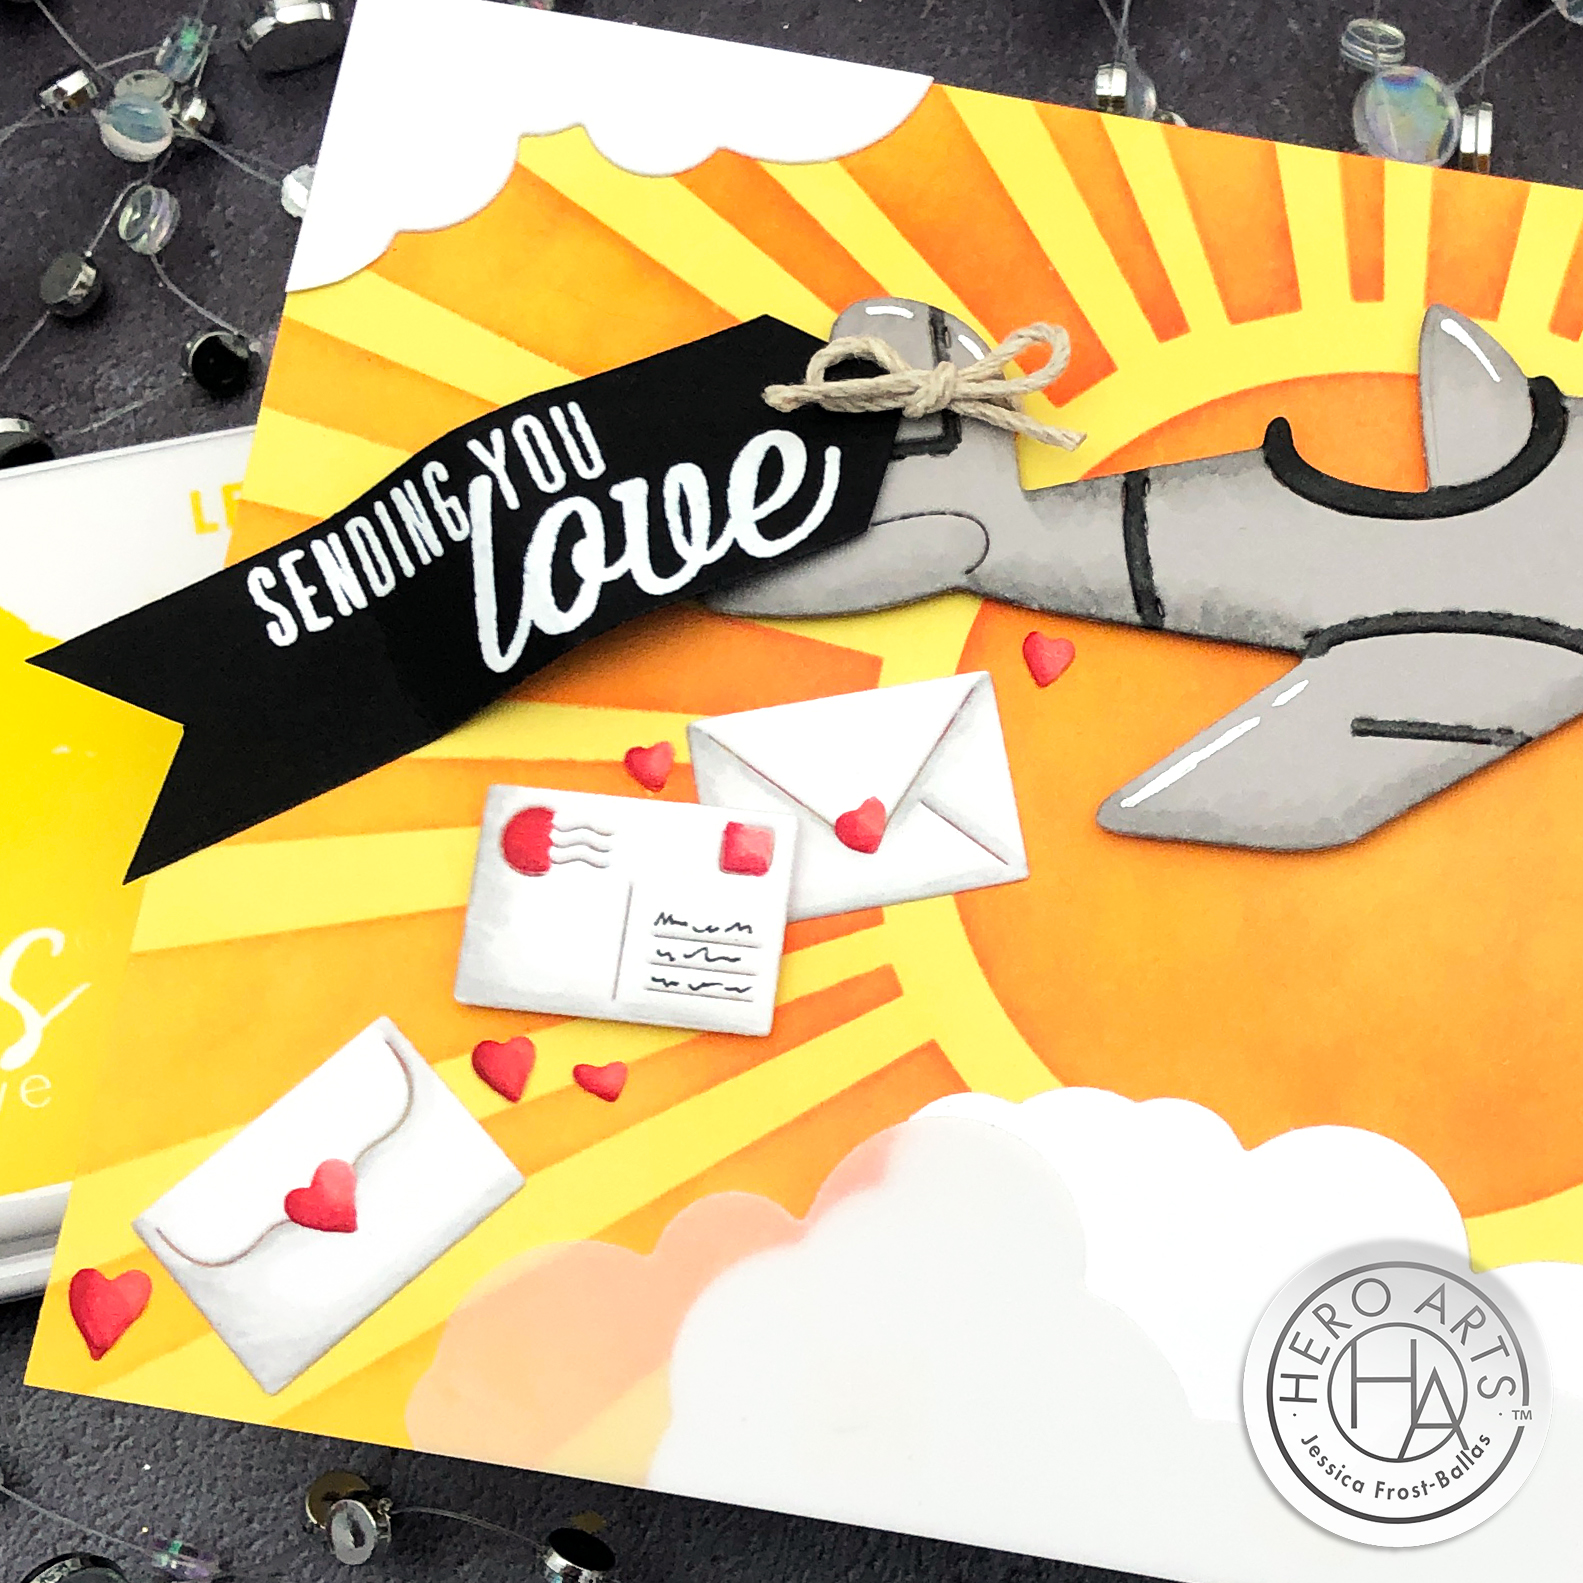 Sending You Love by Jessica Frost-Ballas for Hero Arts